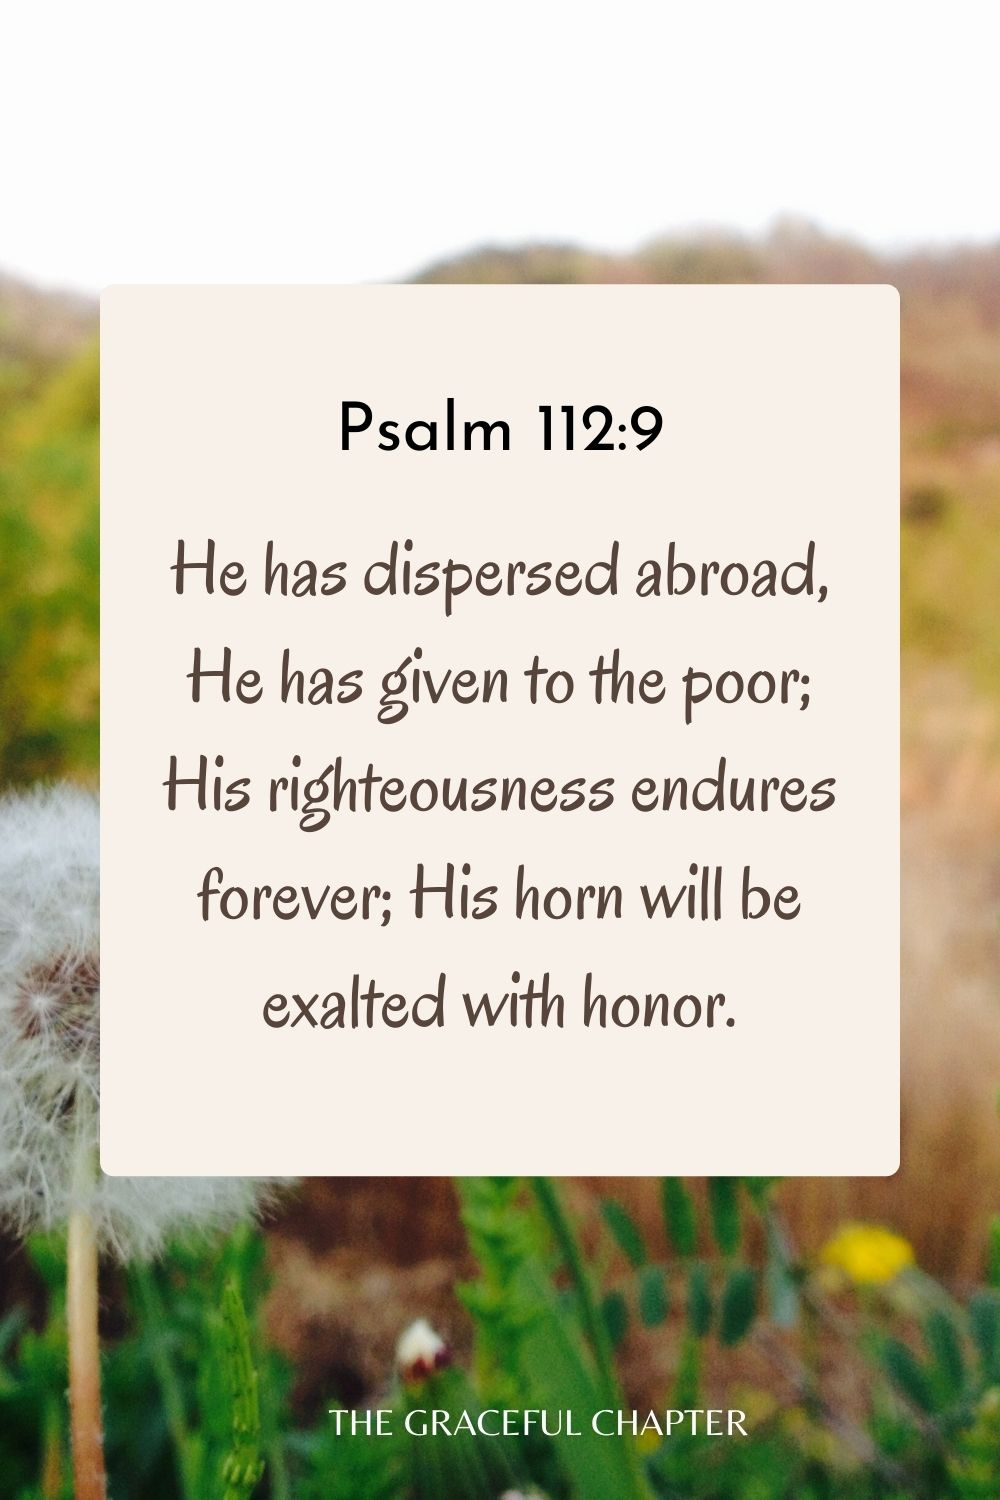 He has dispersed abroad, He has given to the poor; His righteousness endures forever; His horn will be exalted with honor. Psalm 112:9